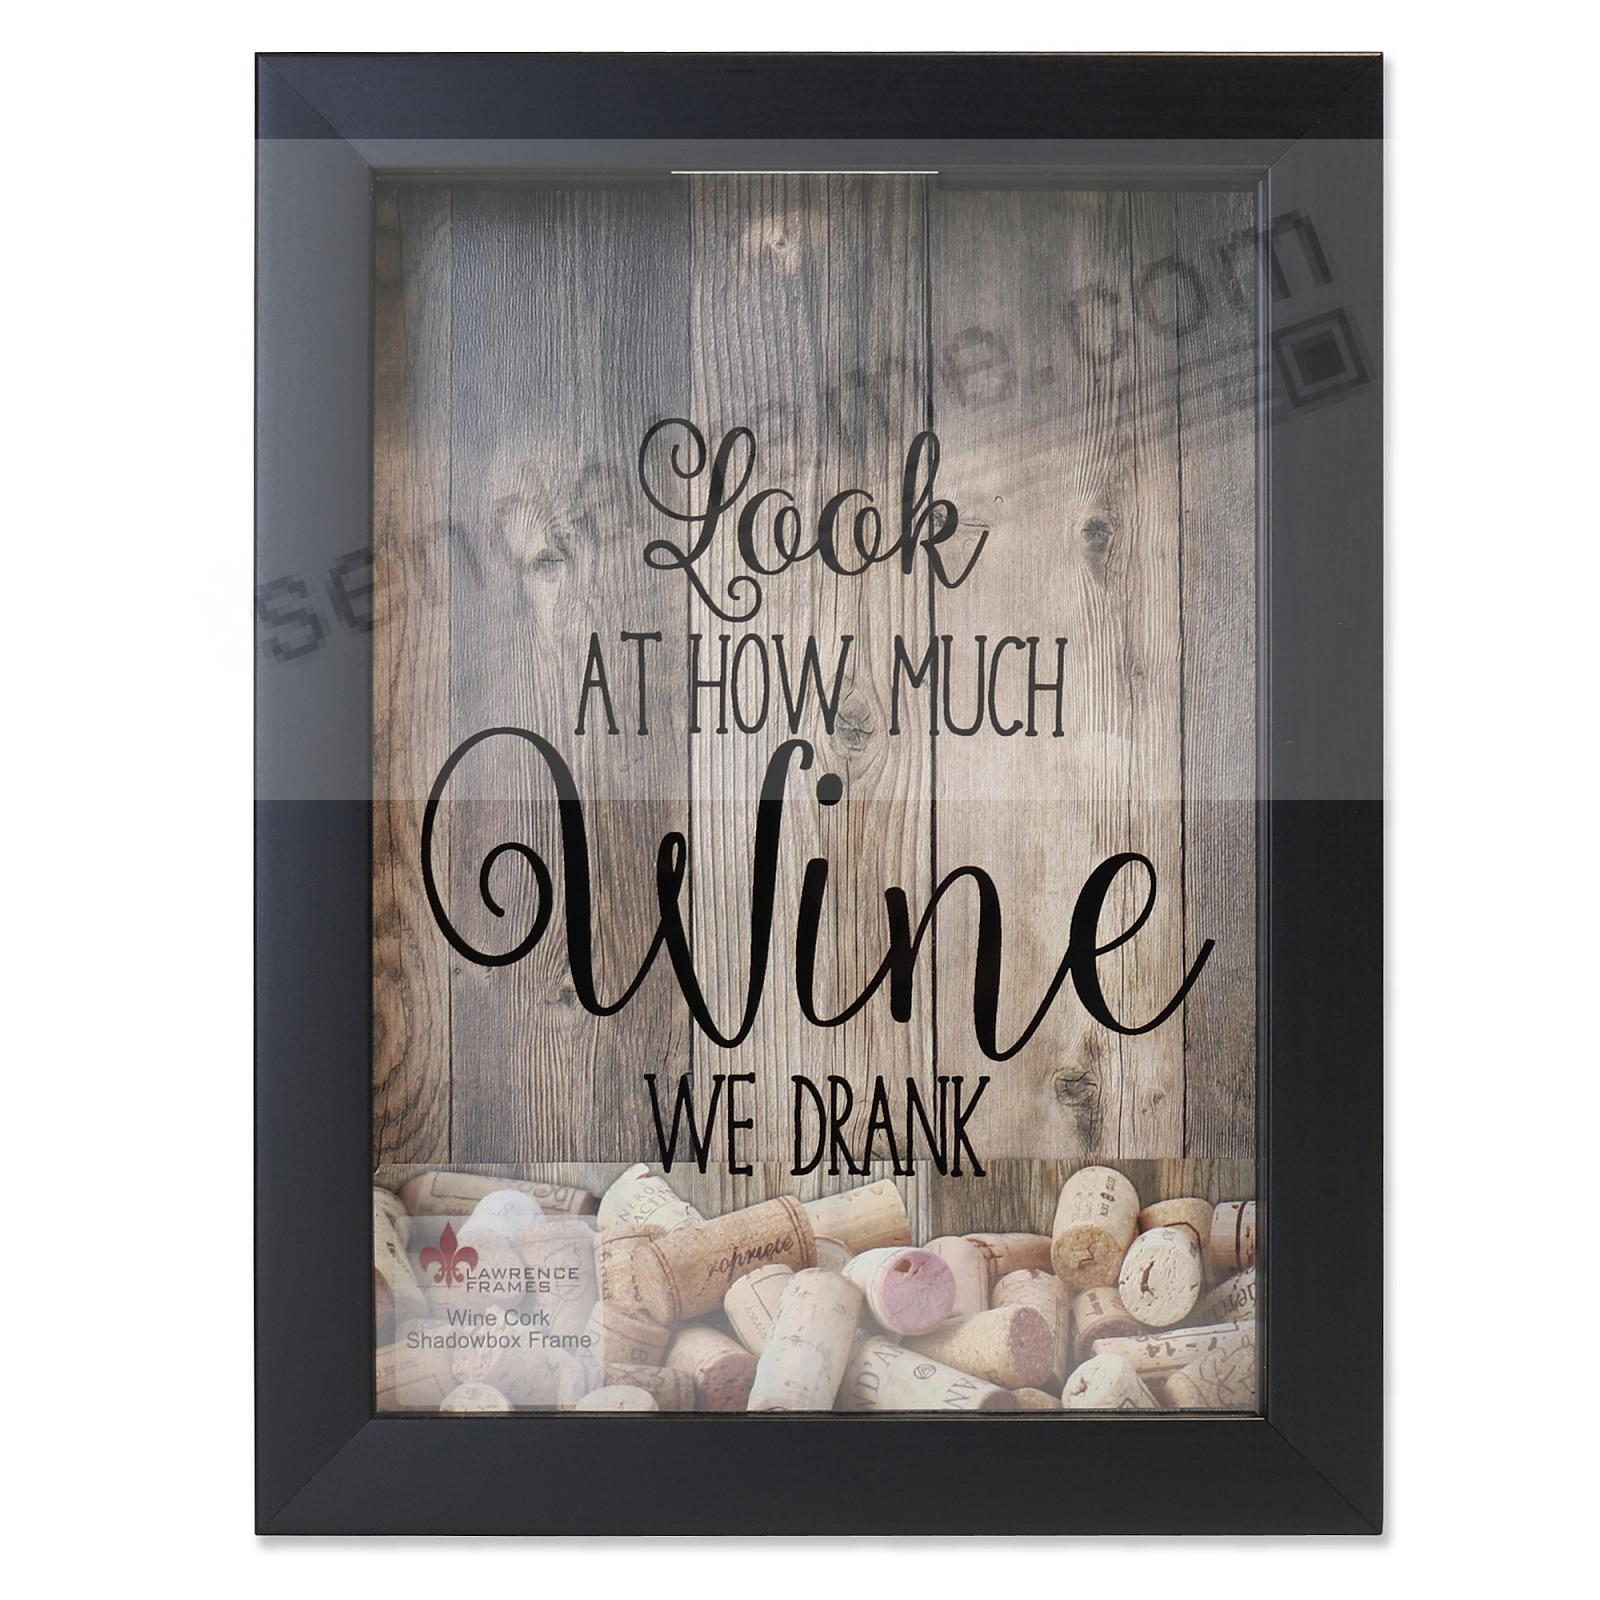 WINE CORK HOLDER Black ShadowBox 8x11 frame by Lawrence®